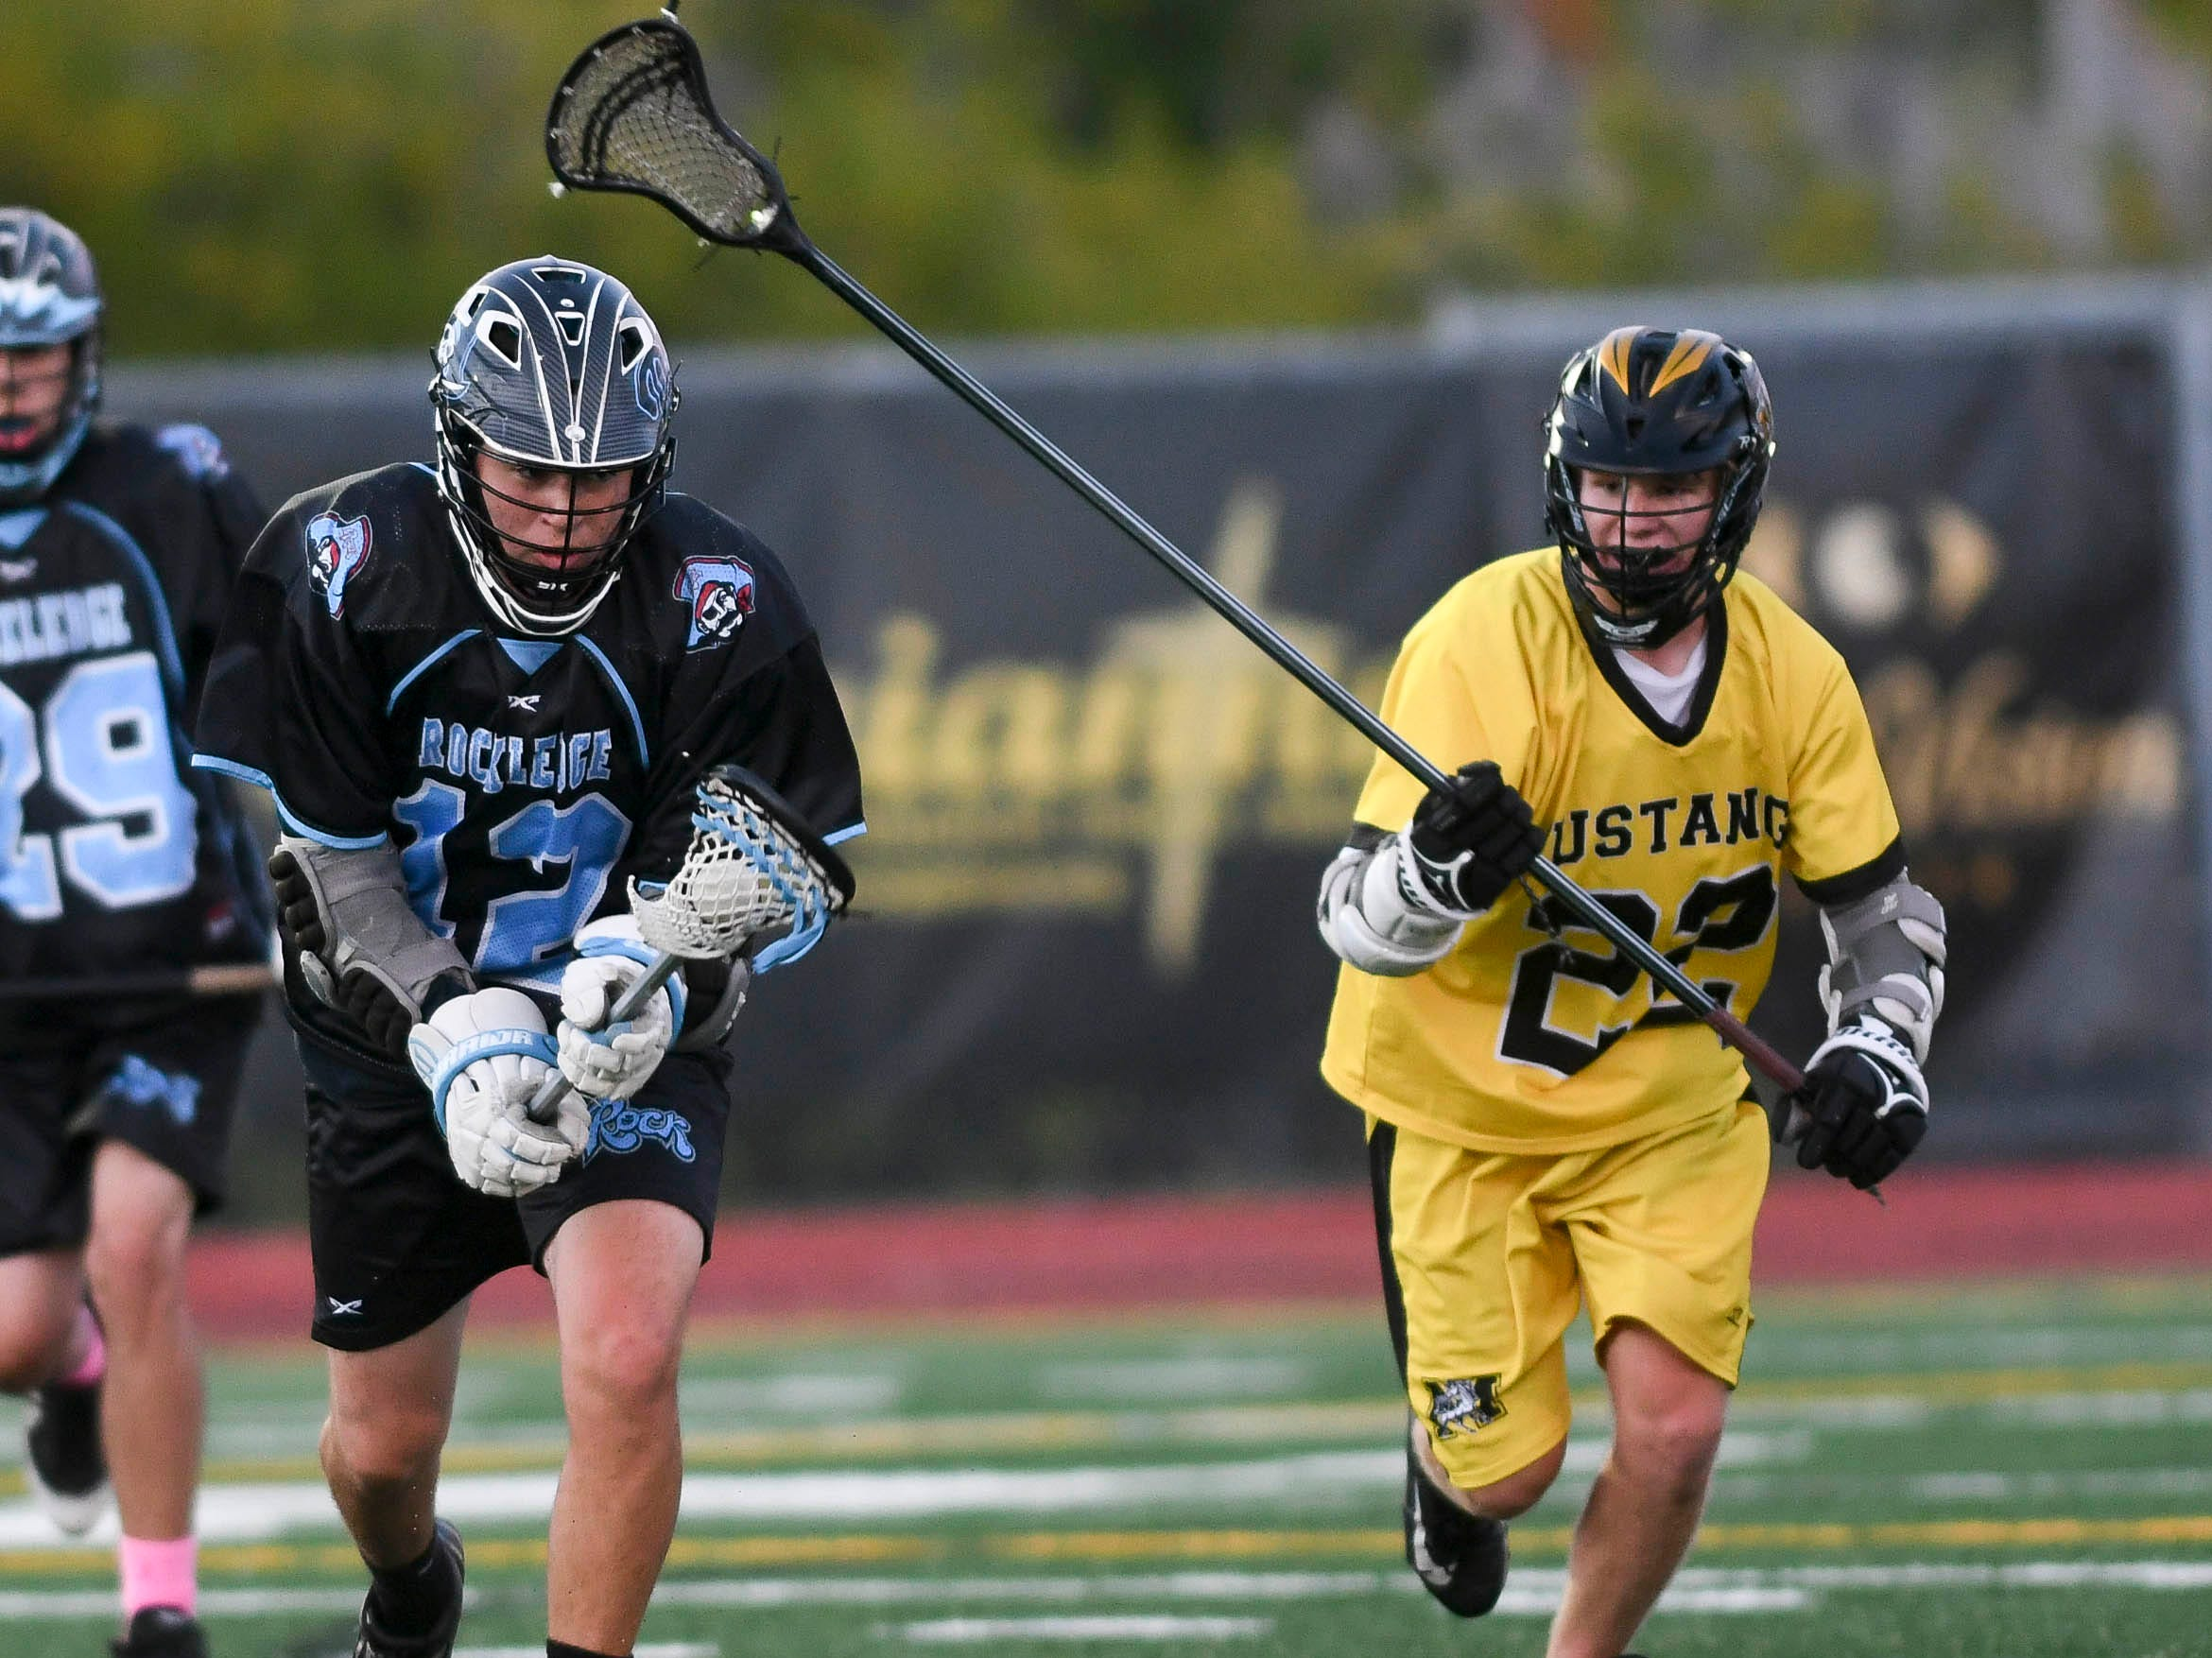 Kyle Ruether of Rockledge is chased by Jacob Loufer of Merritt Island during Wednesday's game.